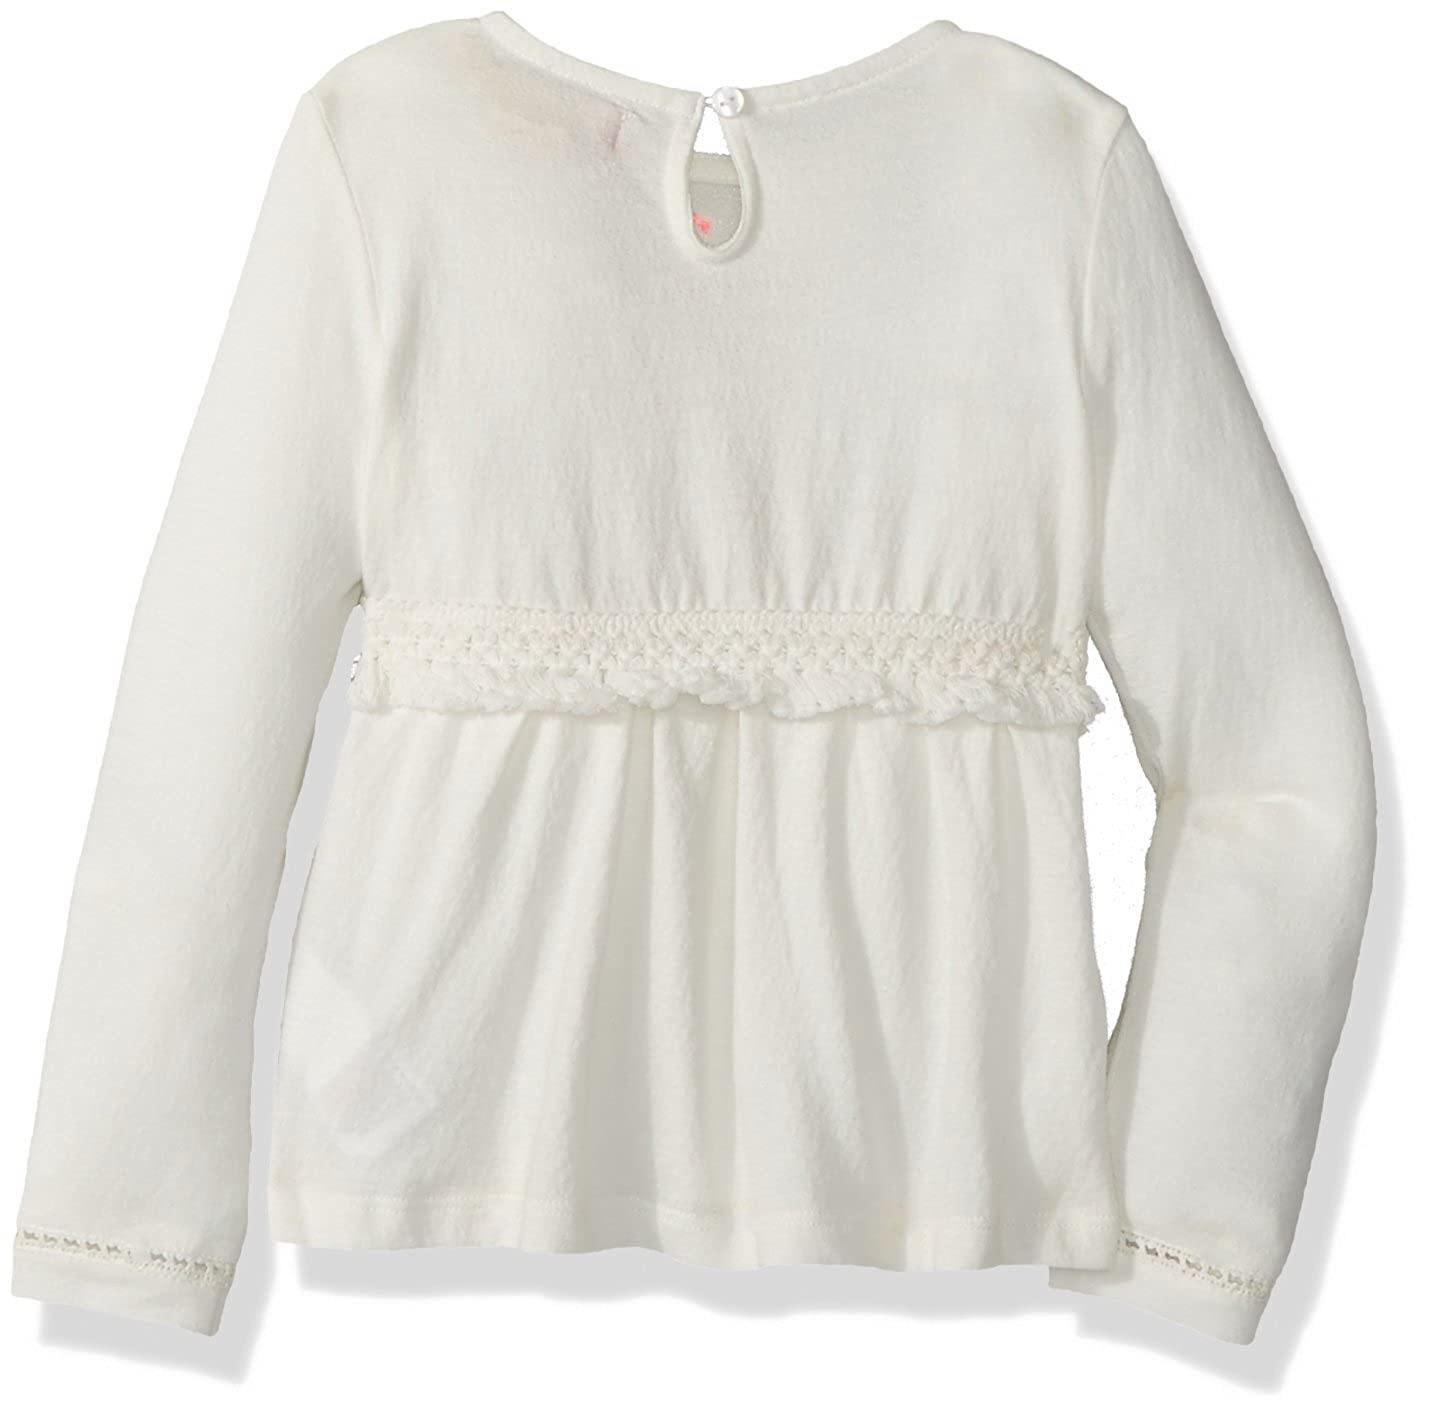 Roxy Girls The Only Light Top